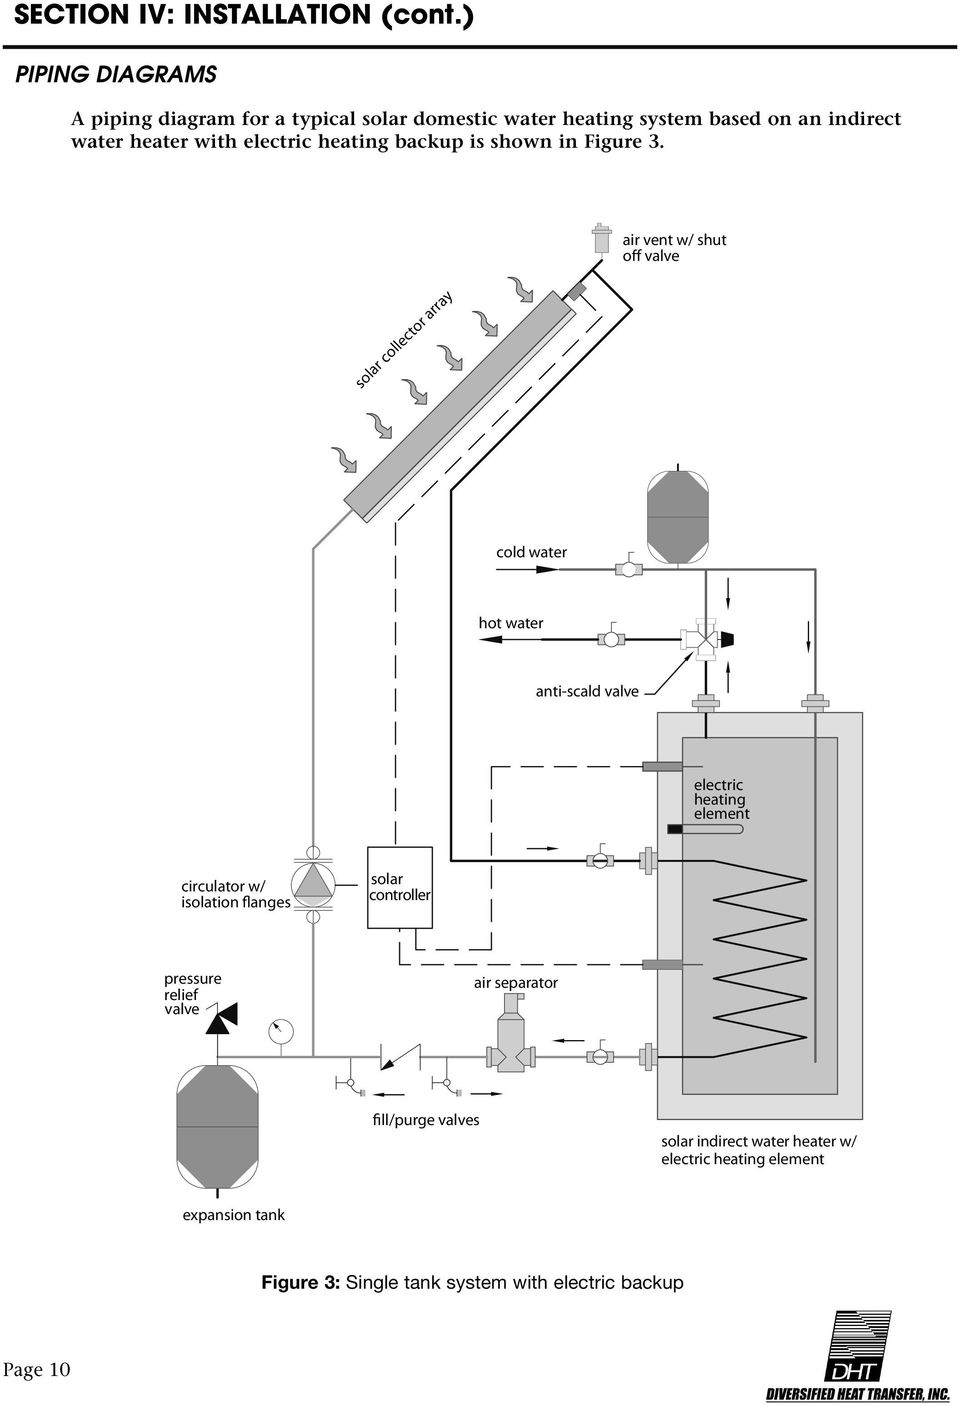 Techtanium solar indirect water heater instruction manual pdf heating backup is shown in figure 3 ccuart